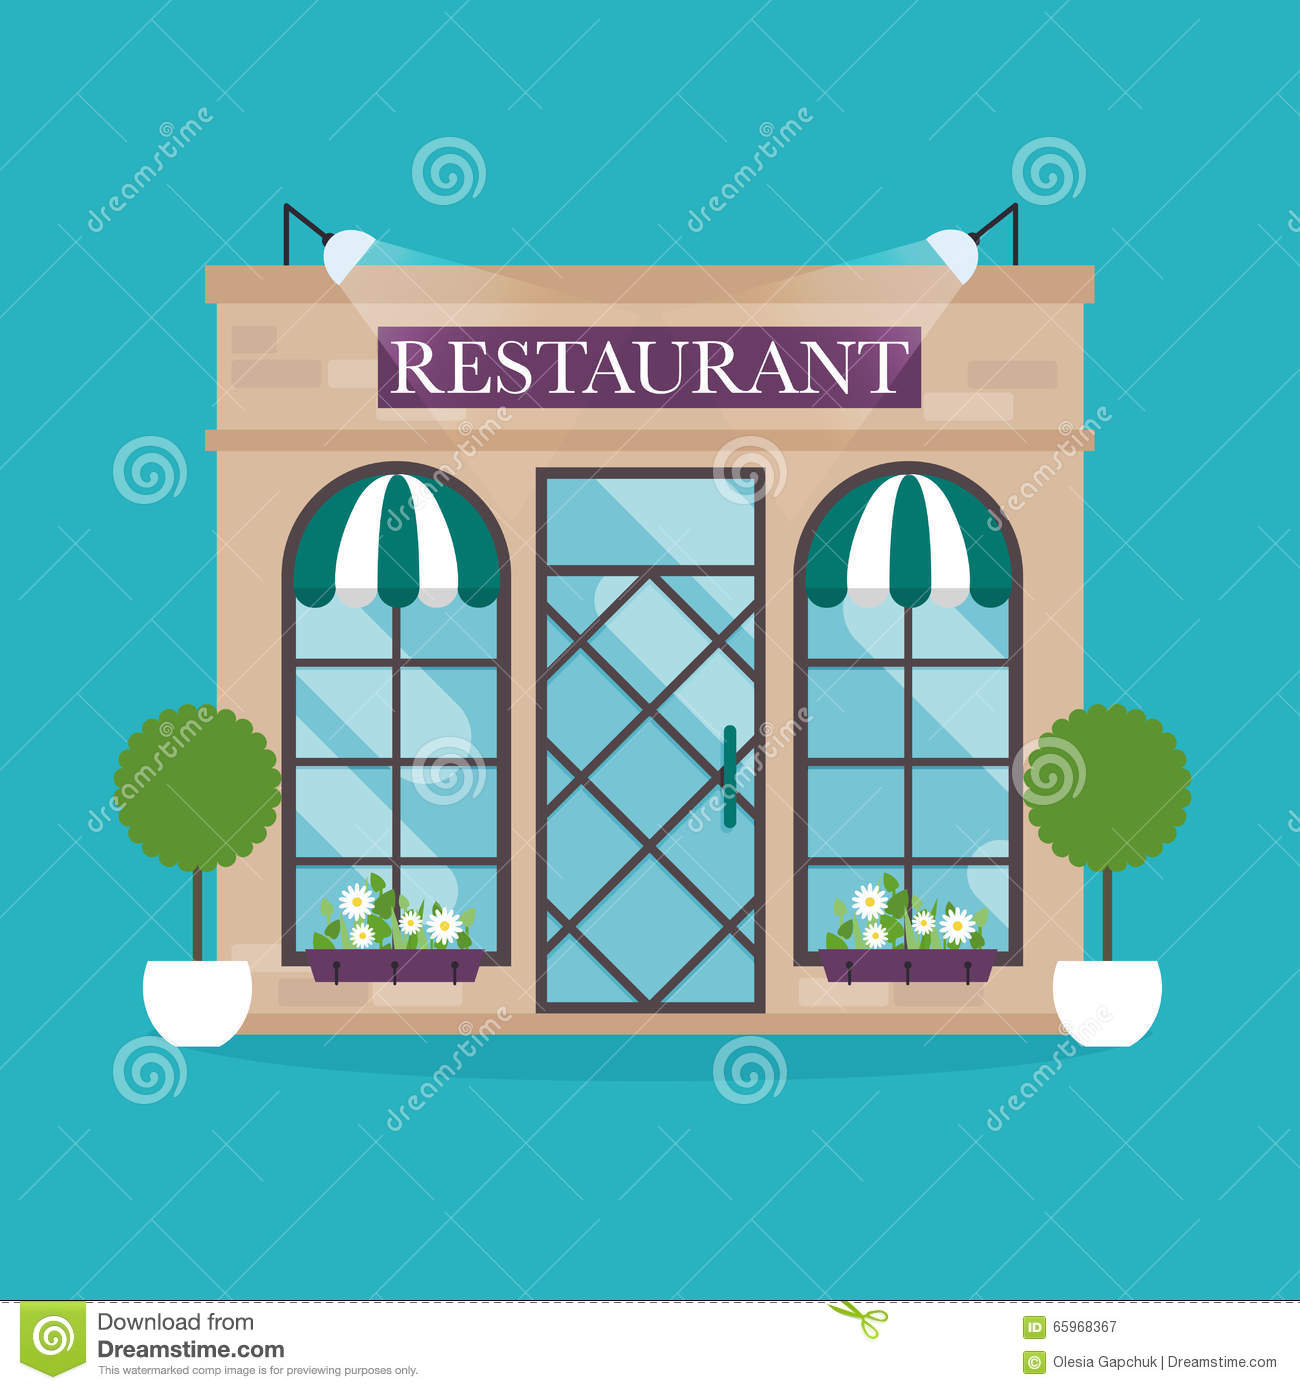 For restaurant pictures graphics illustrations clipart photos - Royalty Free Vector Building Business Design Facade Flat Illustration Restaurant Style Vector